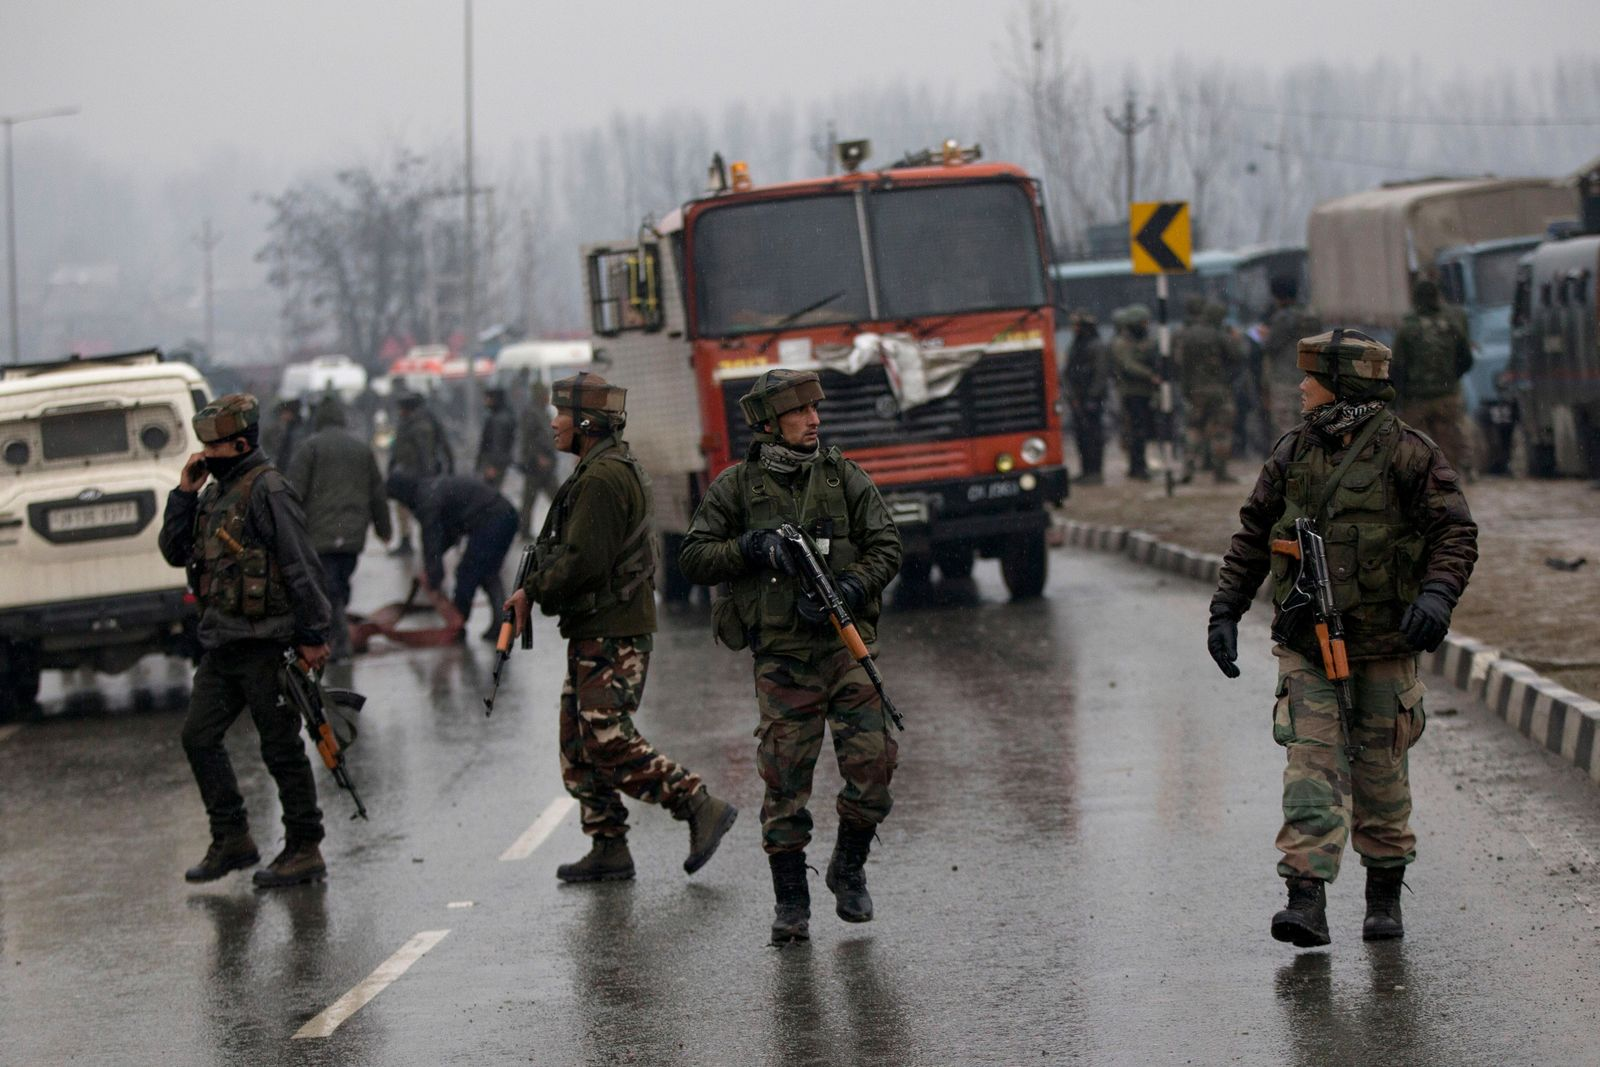 Indian paramilitary soldiers patrol at the site of an explosion in Pampore, Indian-controlled Kashmir, Thursday, Feb. 14, 2019. r. (AP Photo/Dar Yasin)